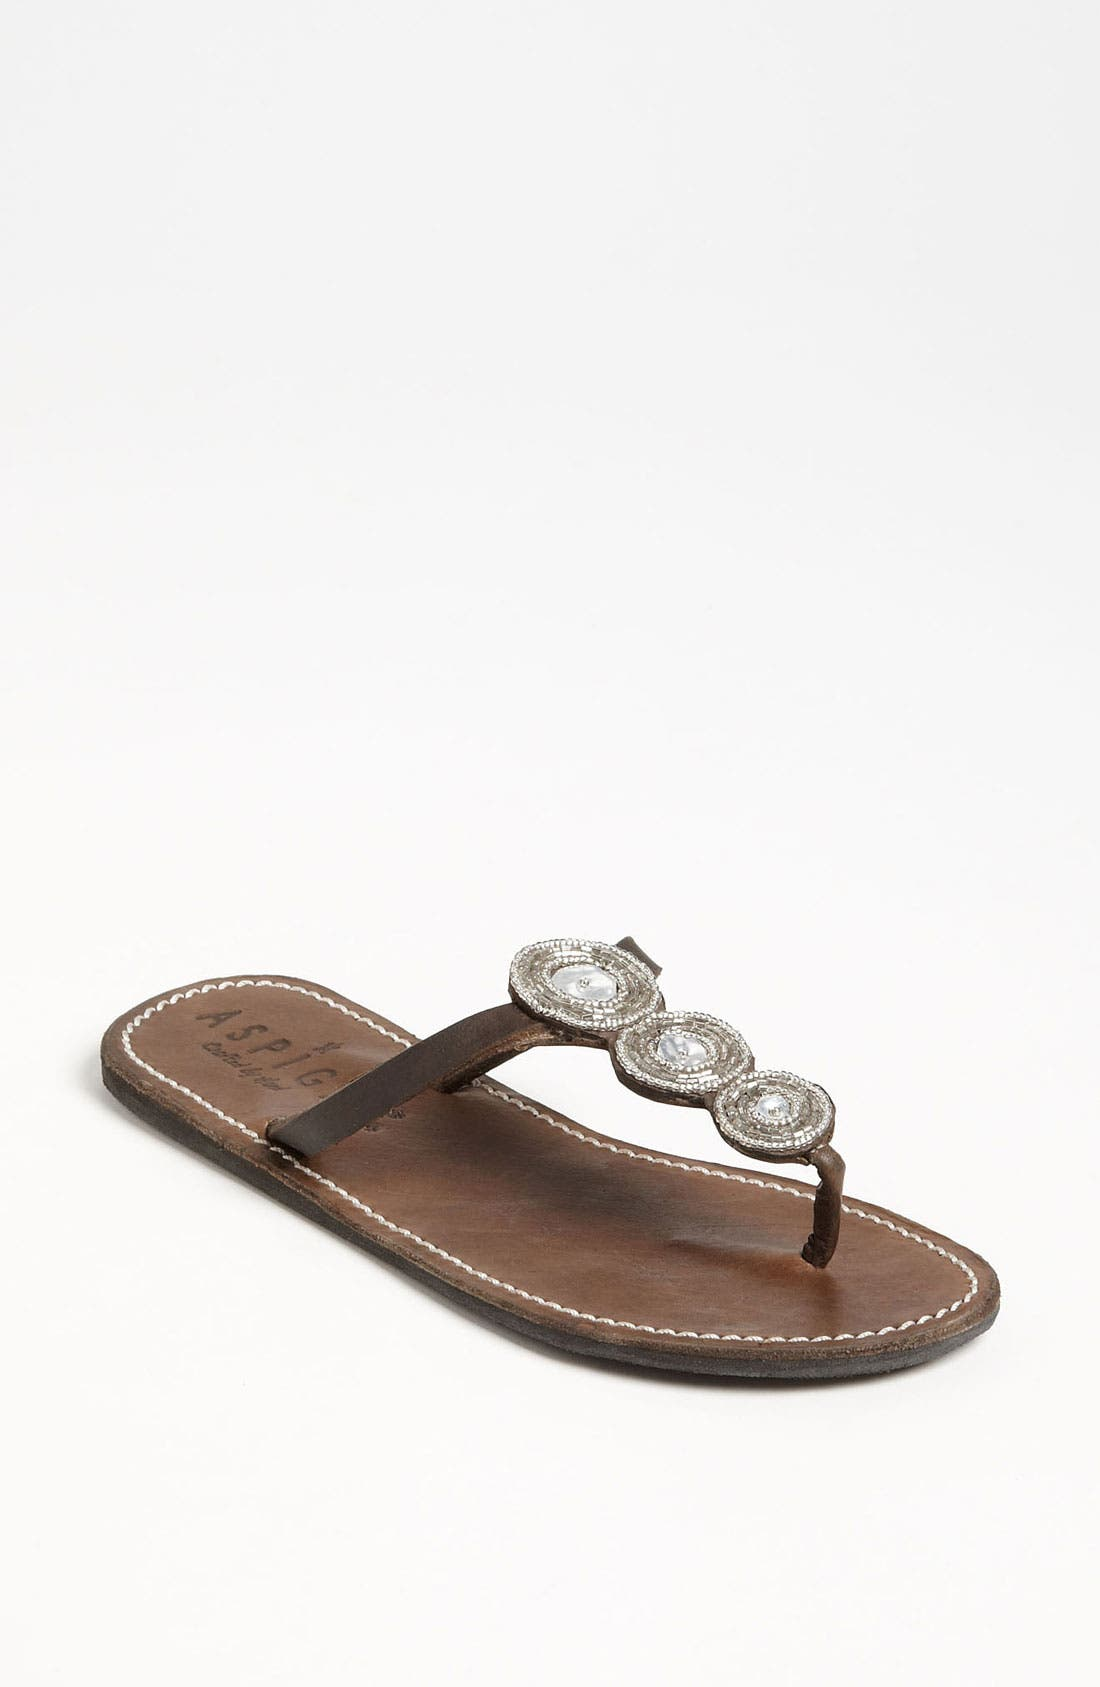 Alternate Image 1 Selected - Aspiga 'Mahati' Sandal